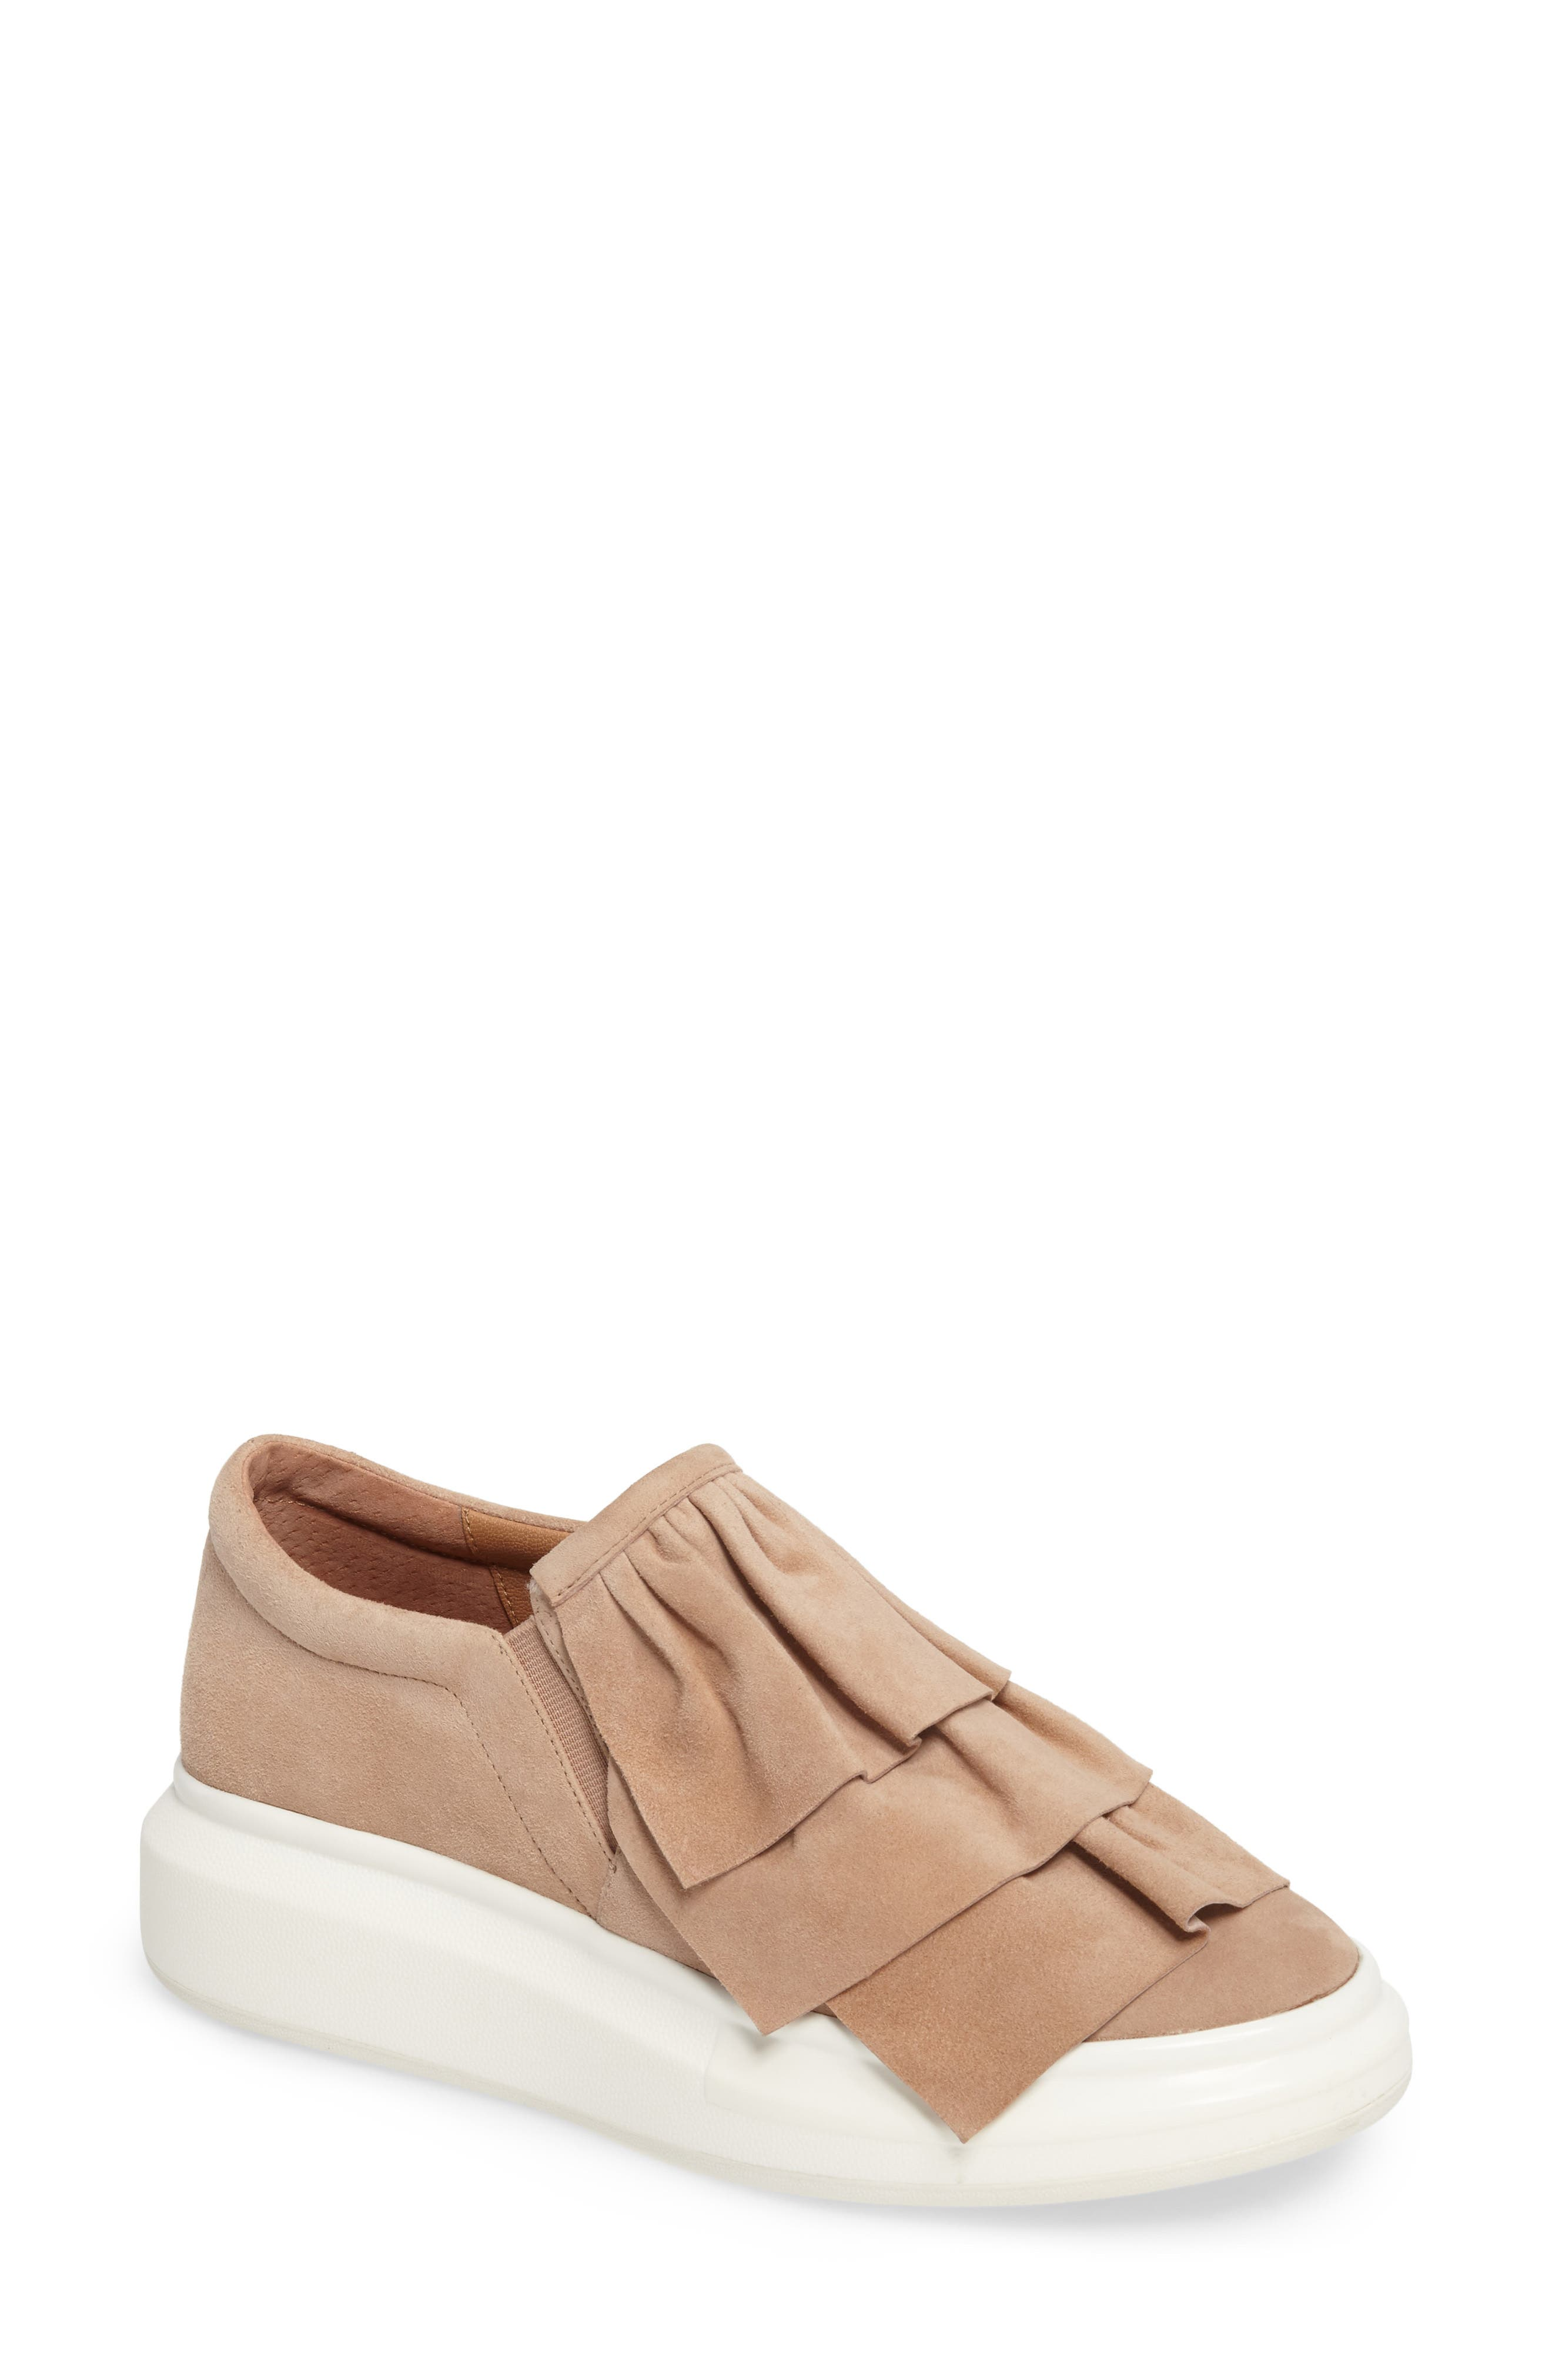 Lolo Ruffle Slip-On,                         Main,                         color, Dusty Rose Suede